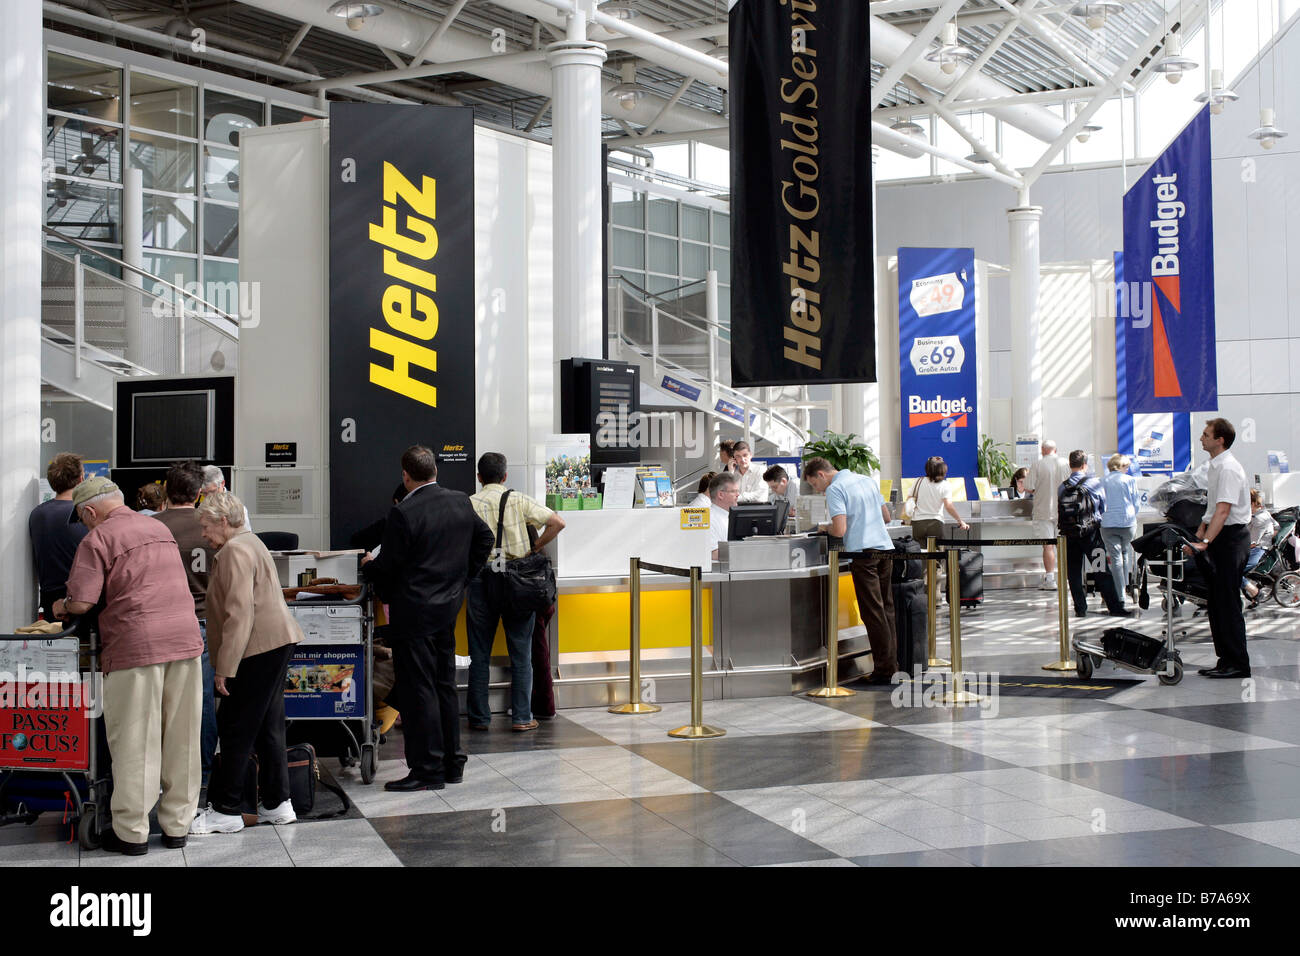 Car rental desks of the hertz and budget car rental companies in the munich airport bavaria germany europe